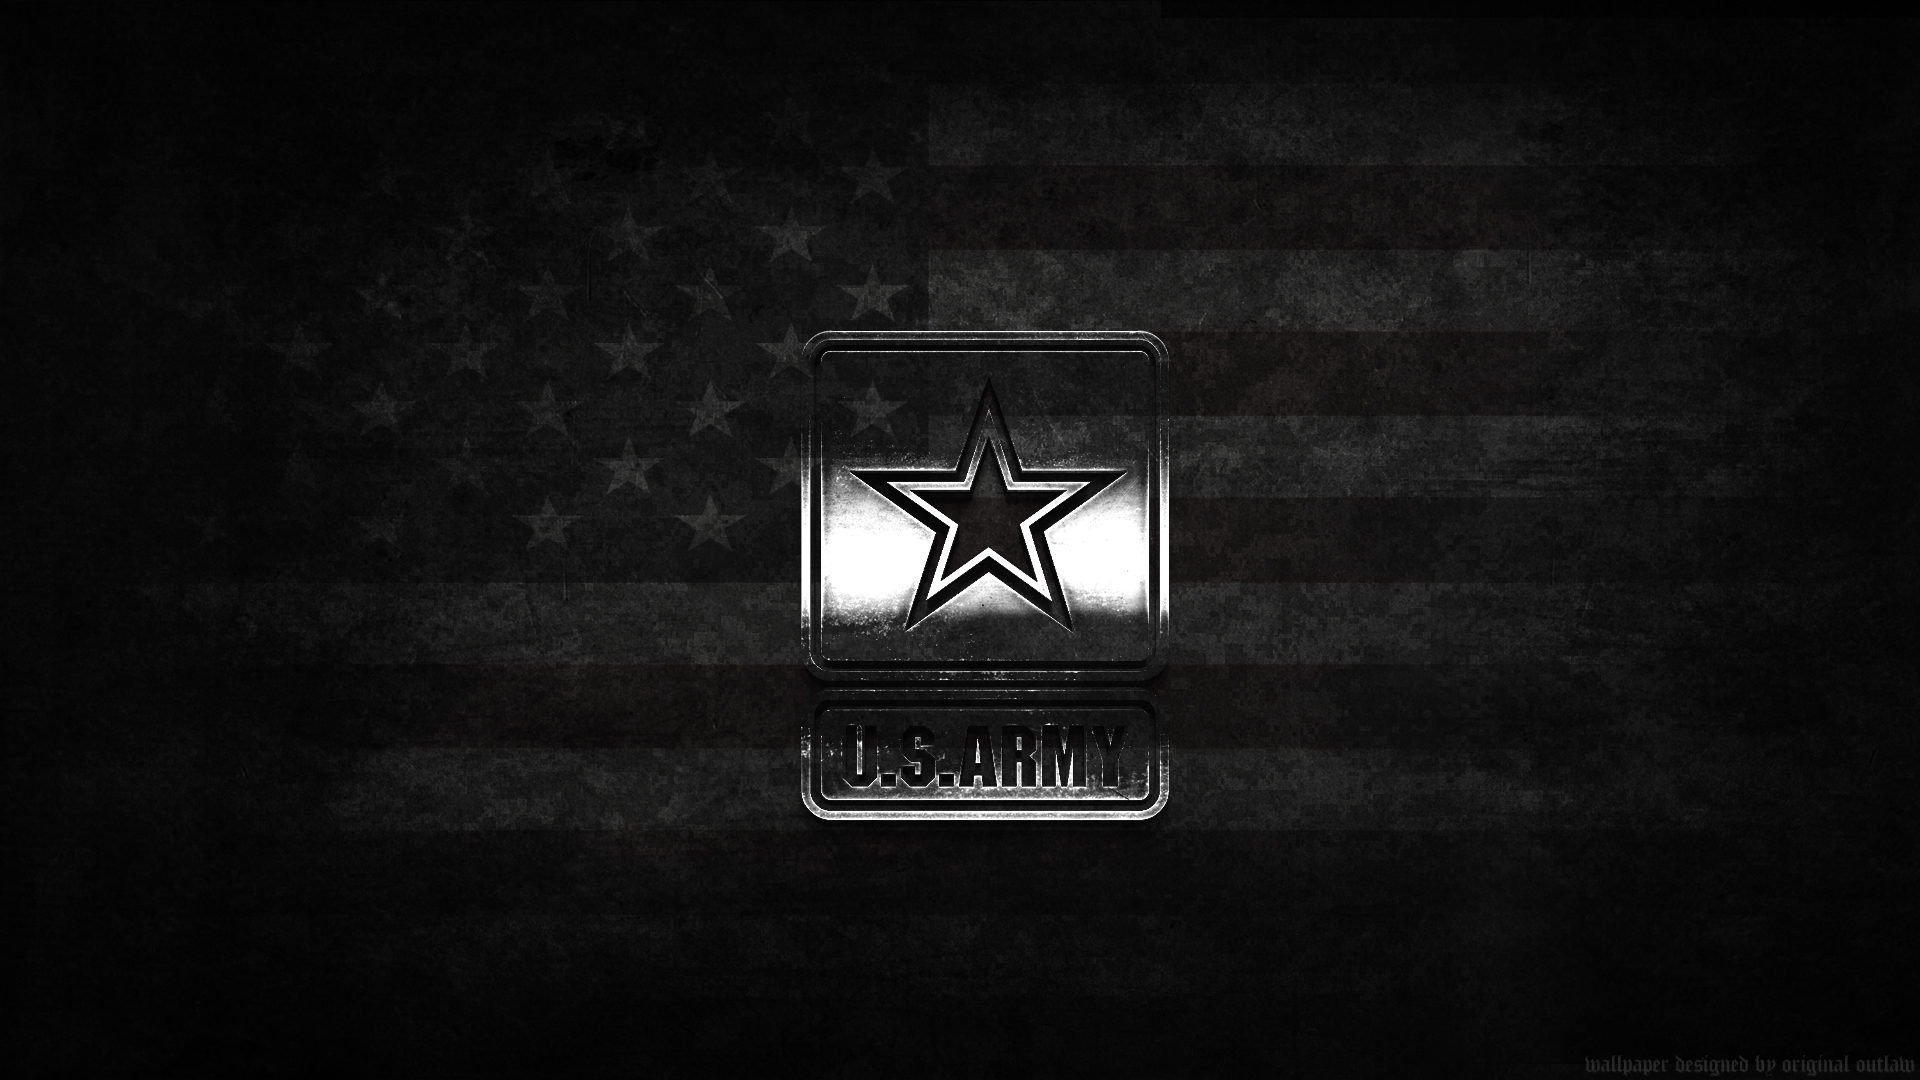 Image Wallpapers Military Wallpaper United States Army Screen Download 1920x1080